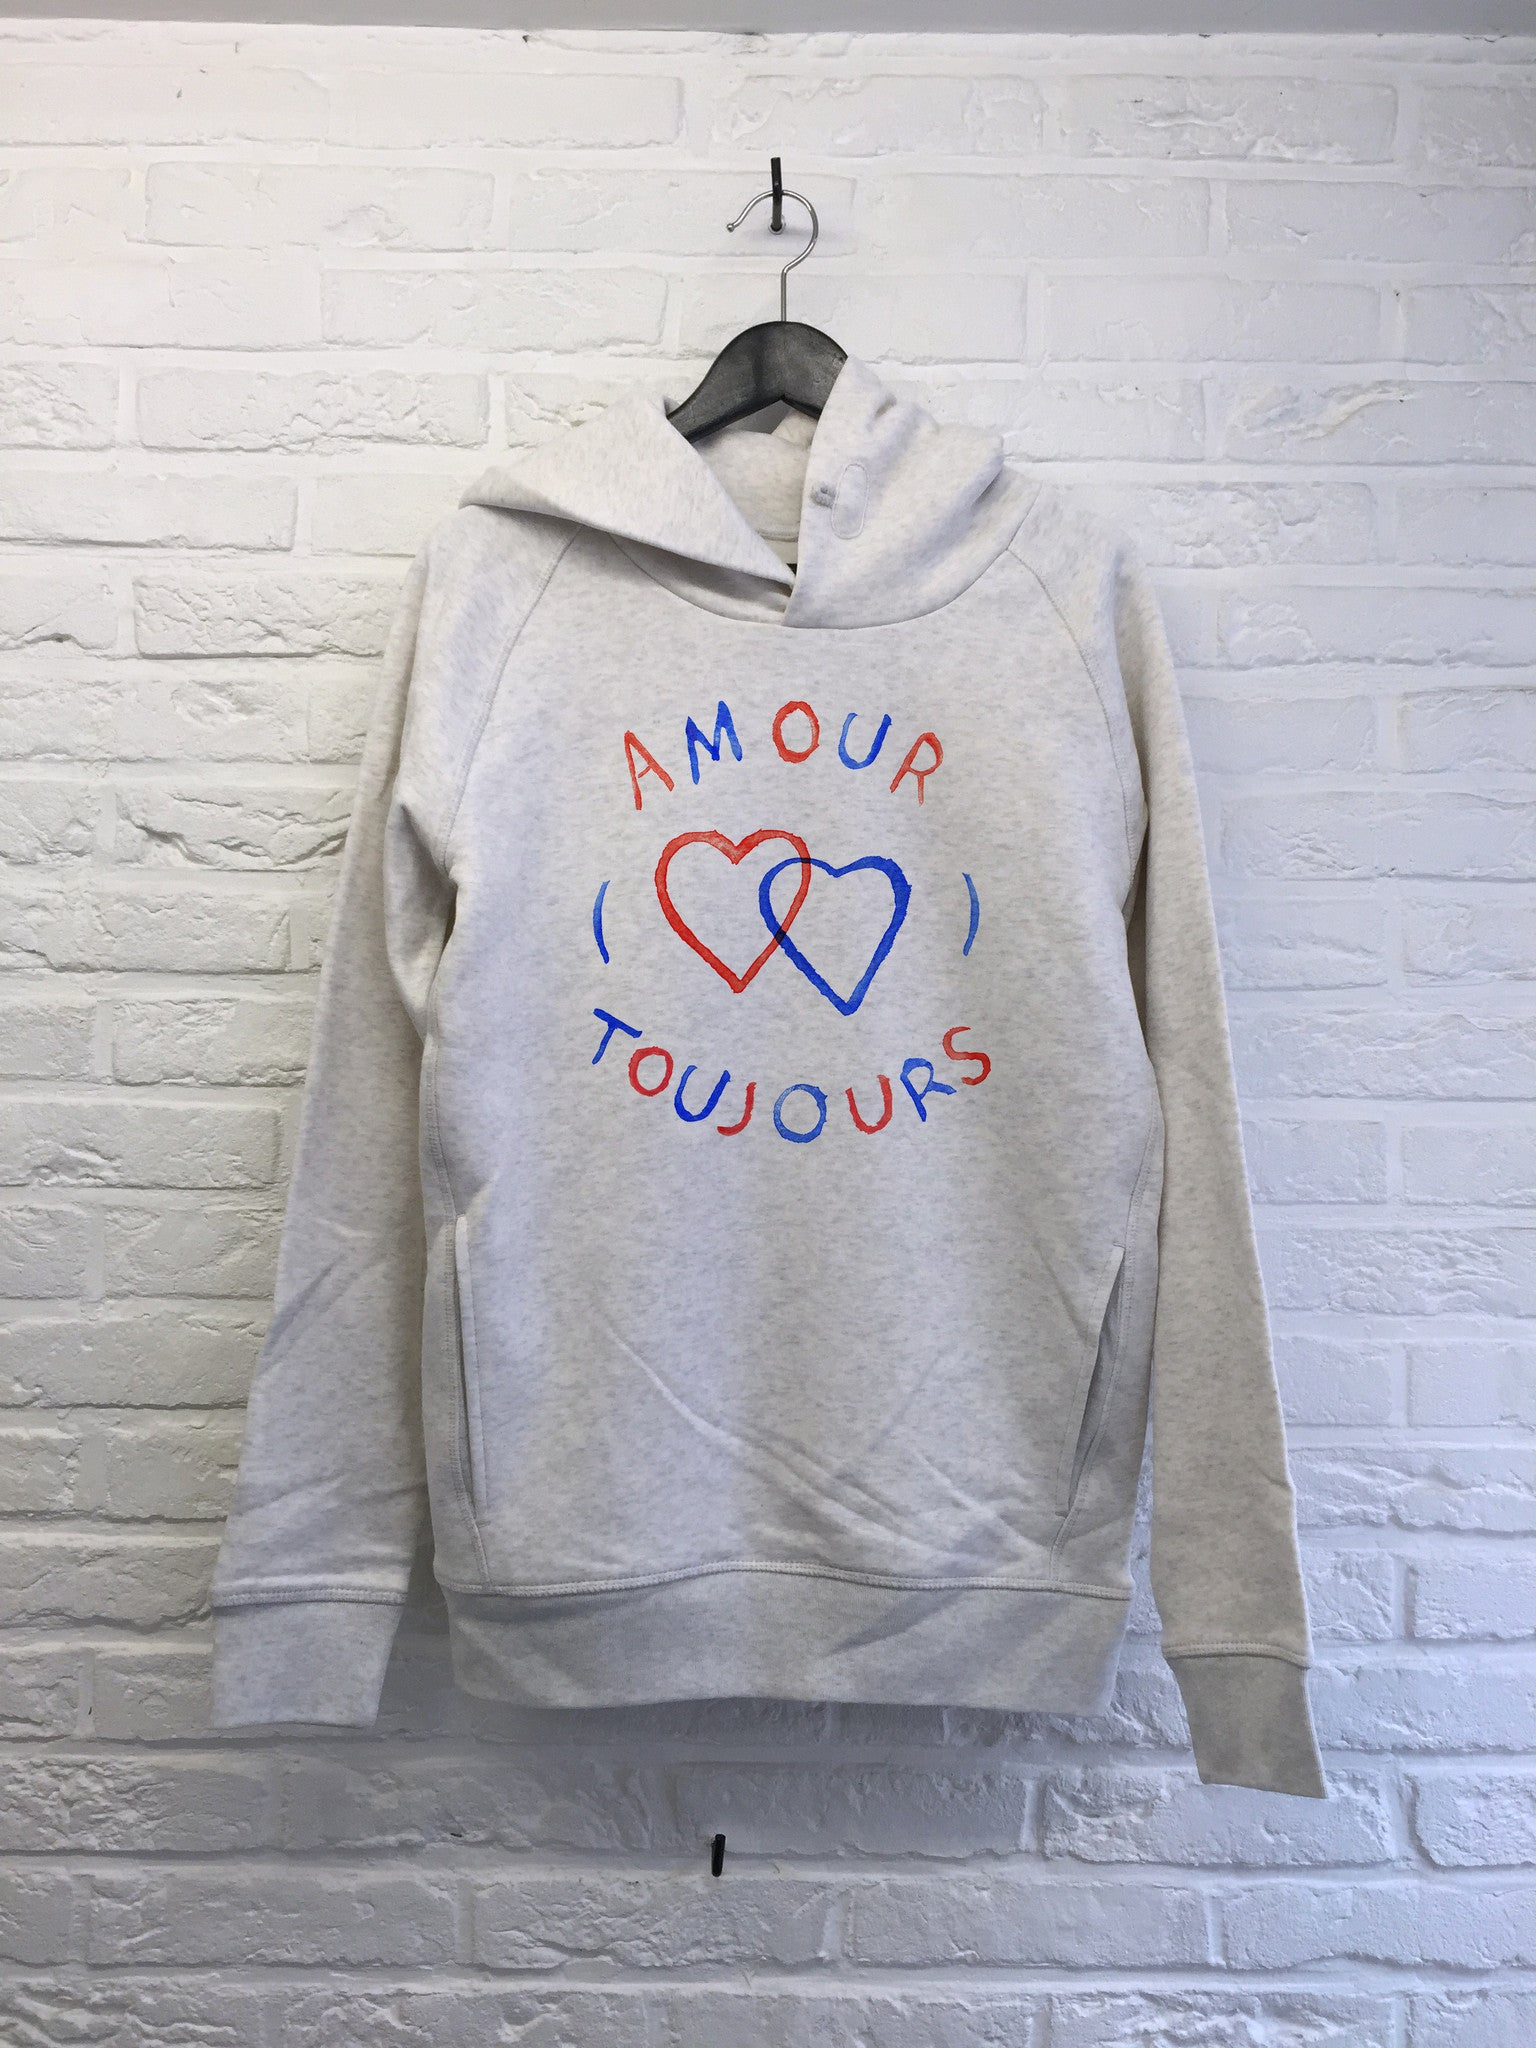 TH Gallery - Amour Toujours - Hoodies Deluxe-Sweat shirts-Atelier Amelot